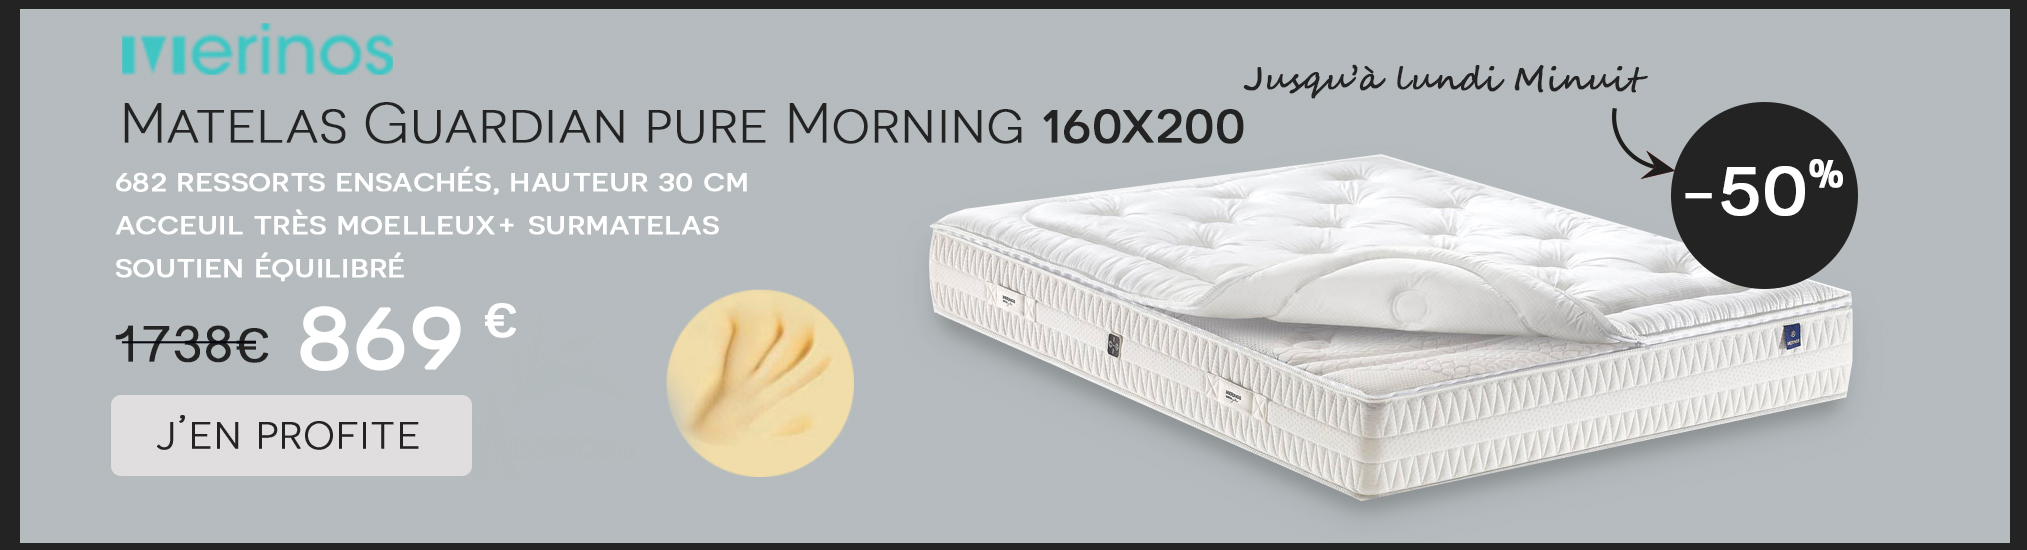 Matelas Guardian Pure Morning Merinos 160x200